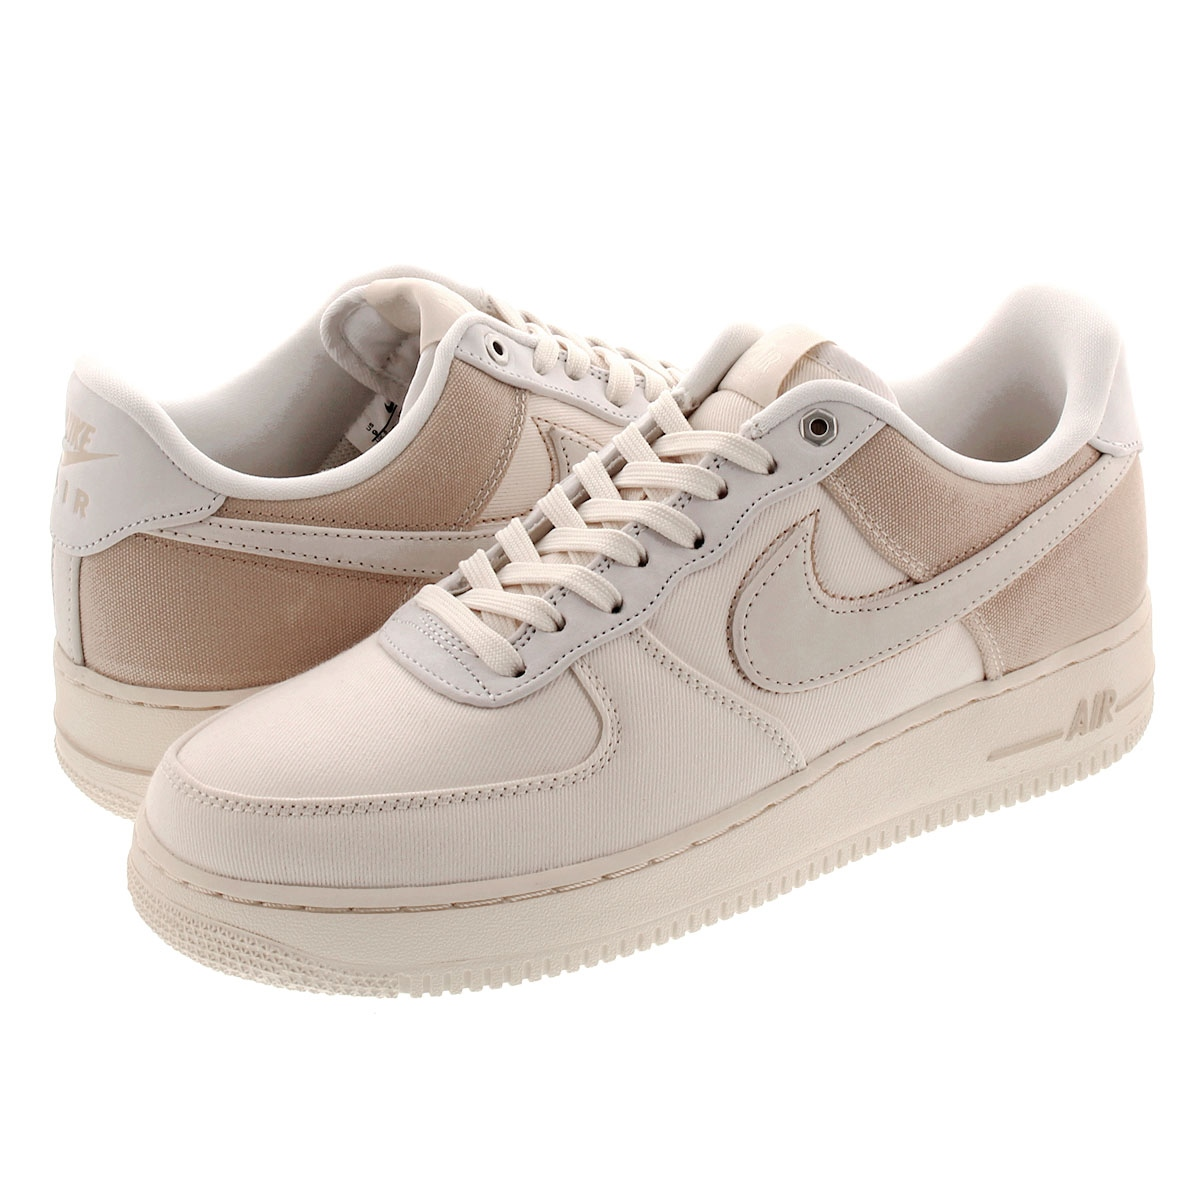 3 PALE IVORYLIGHT CREAM ci1116 100 premium in NIKE AIR FORCE 1 '07 in PRM 3 Nike air force 1 '07